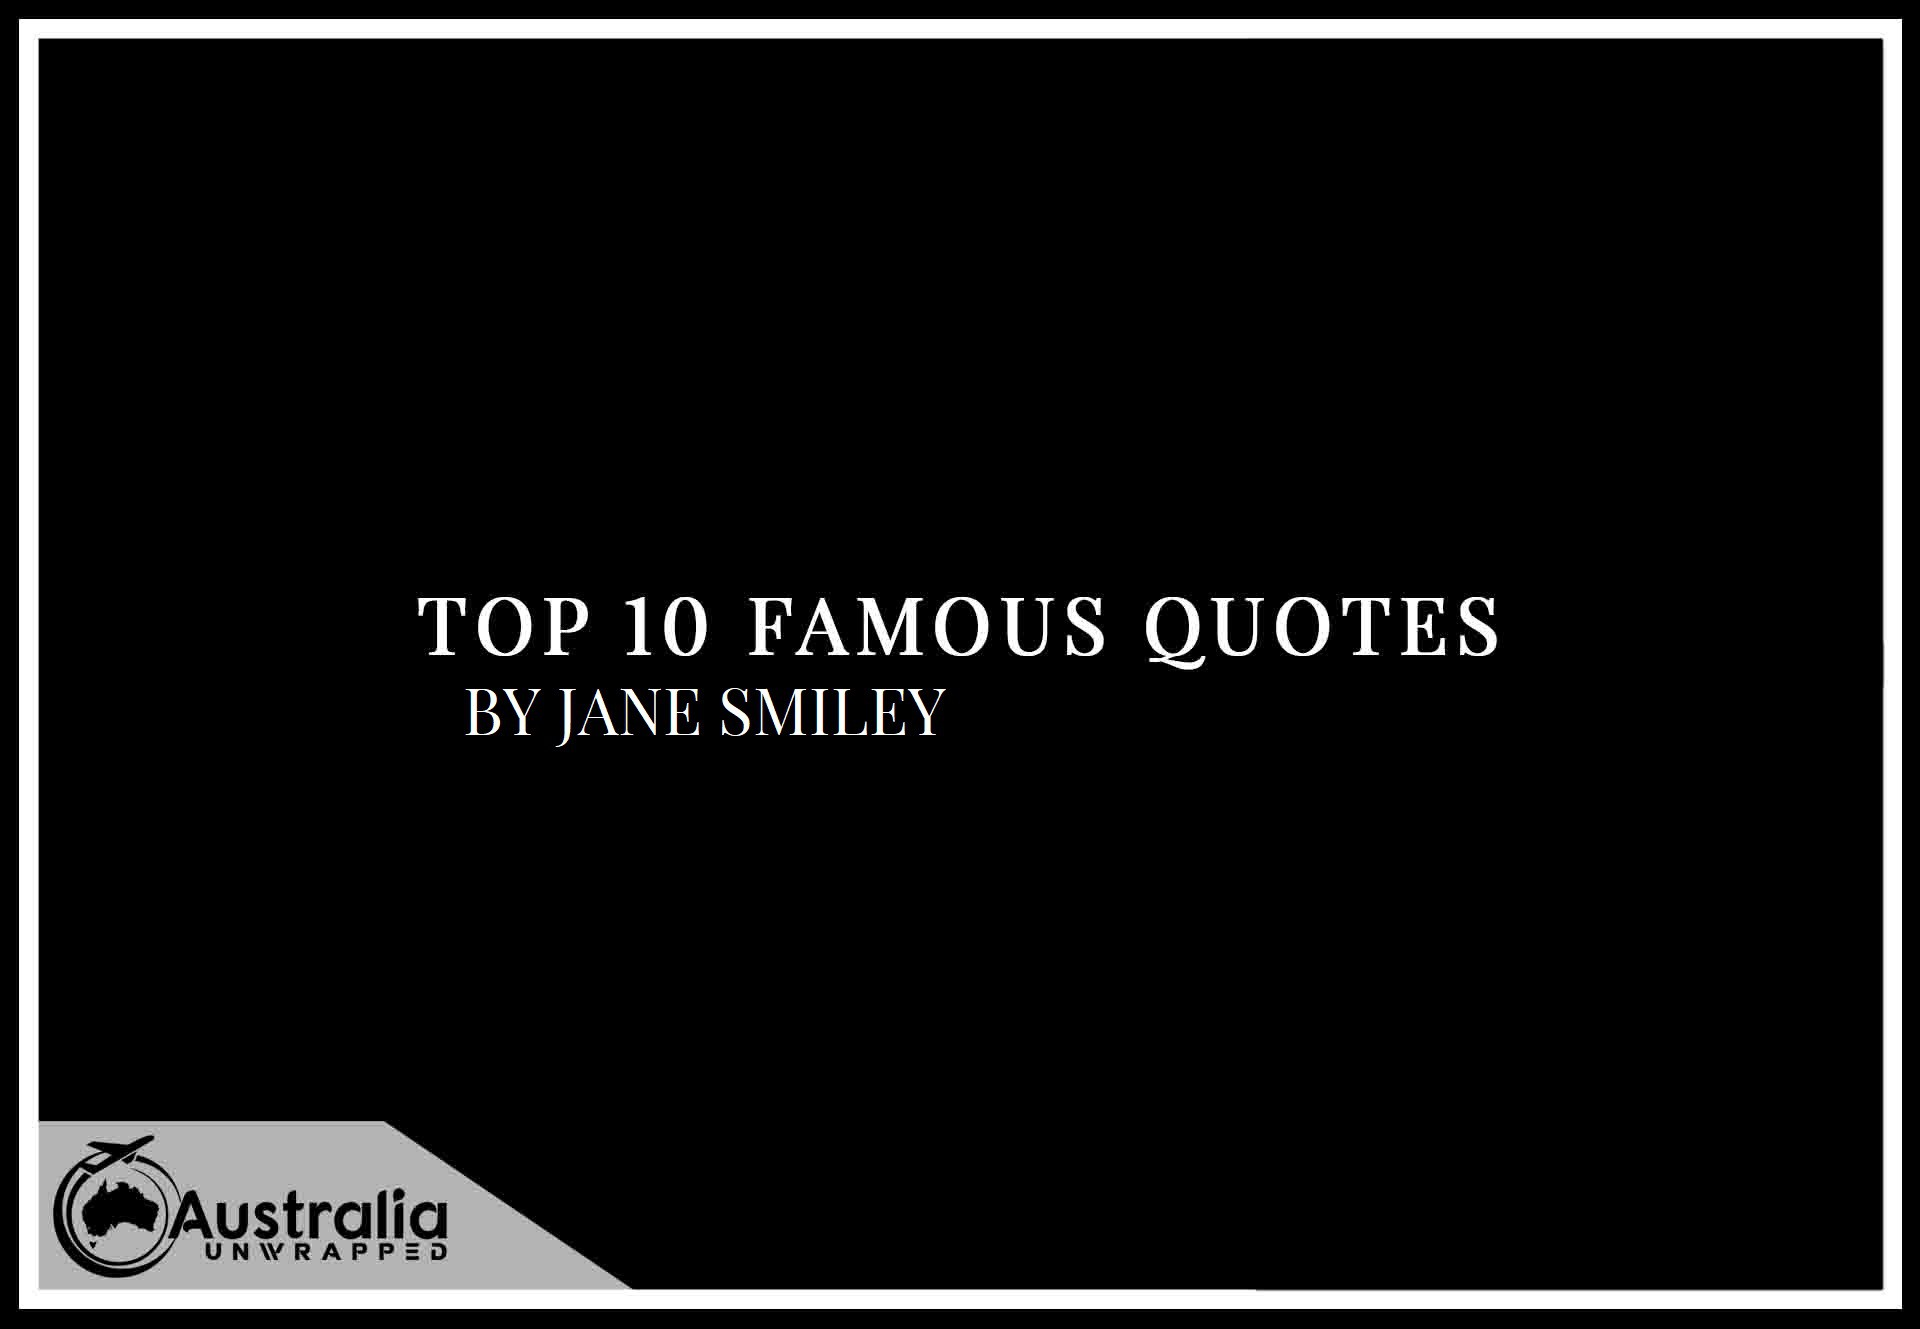 Top 10 Famous Quotes by Author Jane Smiley